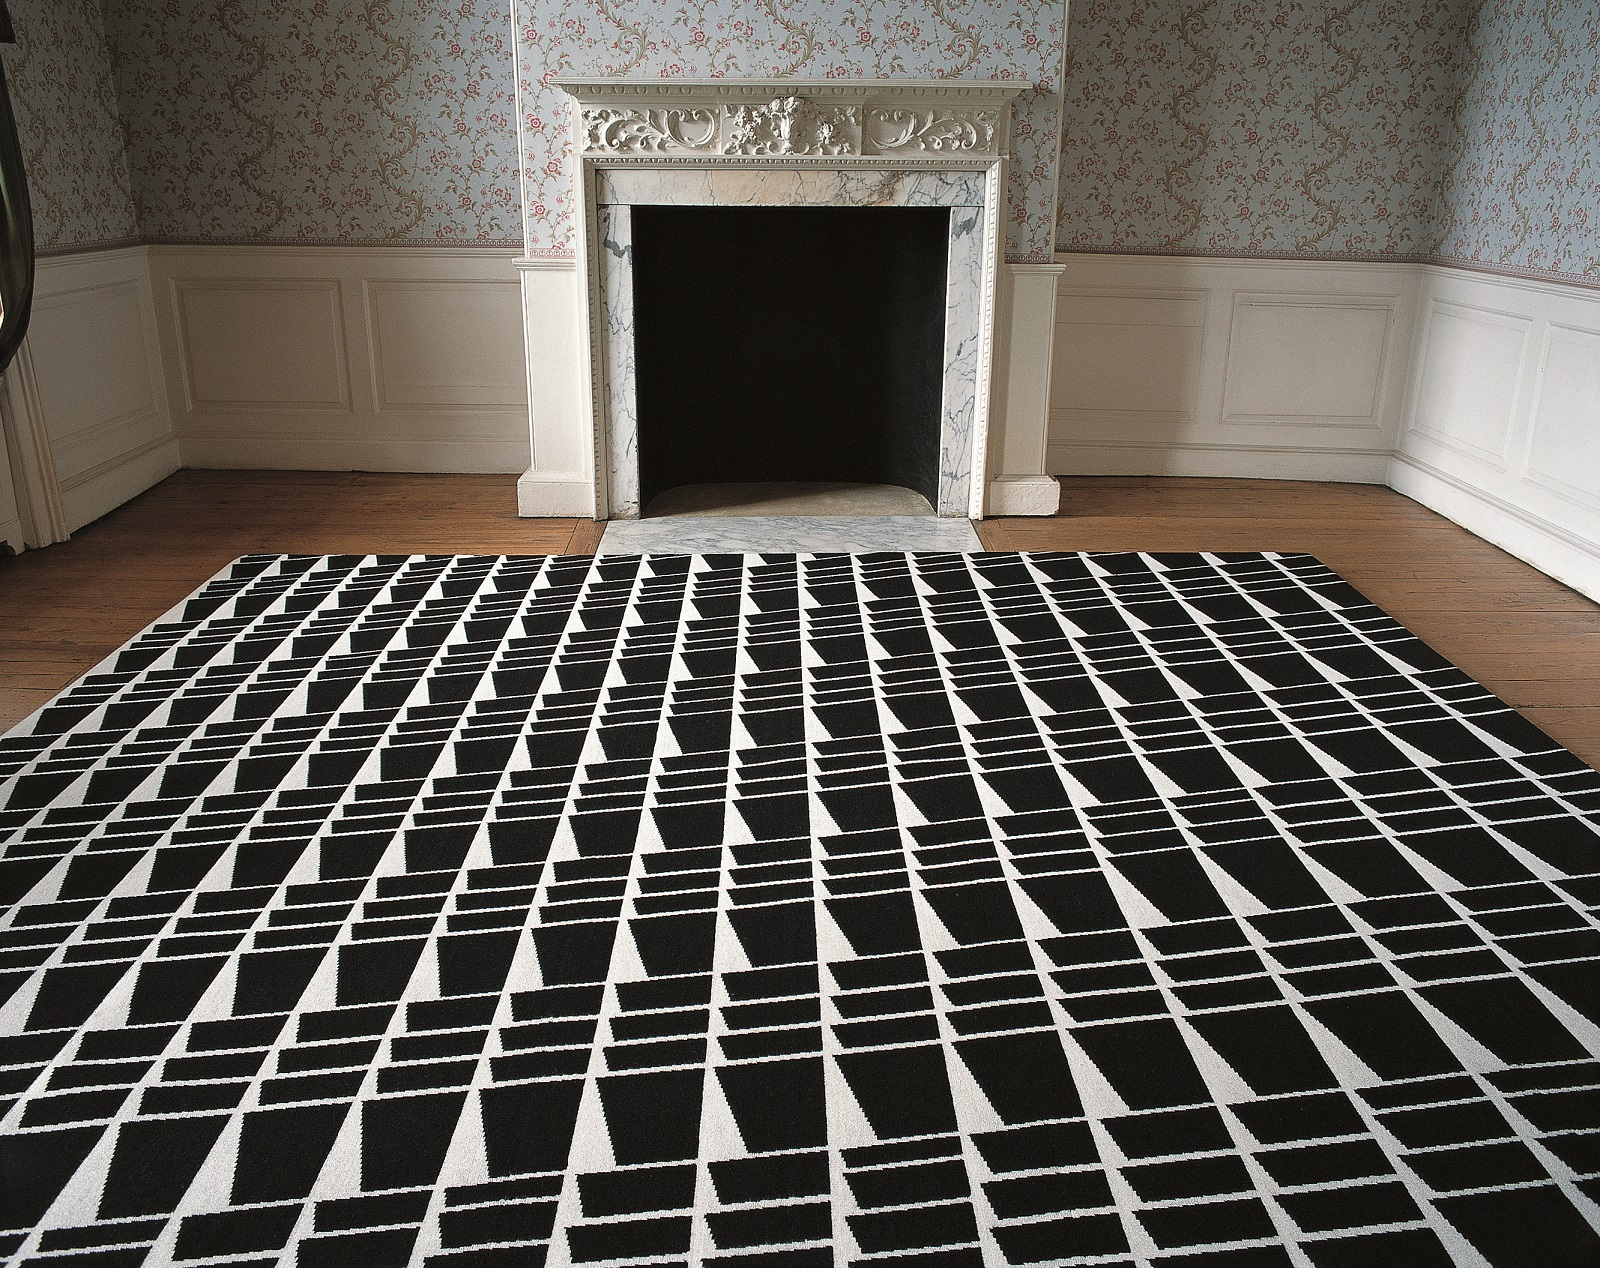 A black and white rug in a geometric pattern laid out in front of a period fireplace in a room with floral wallpaper